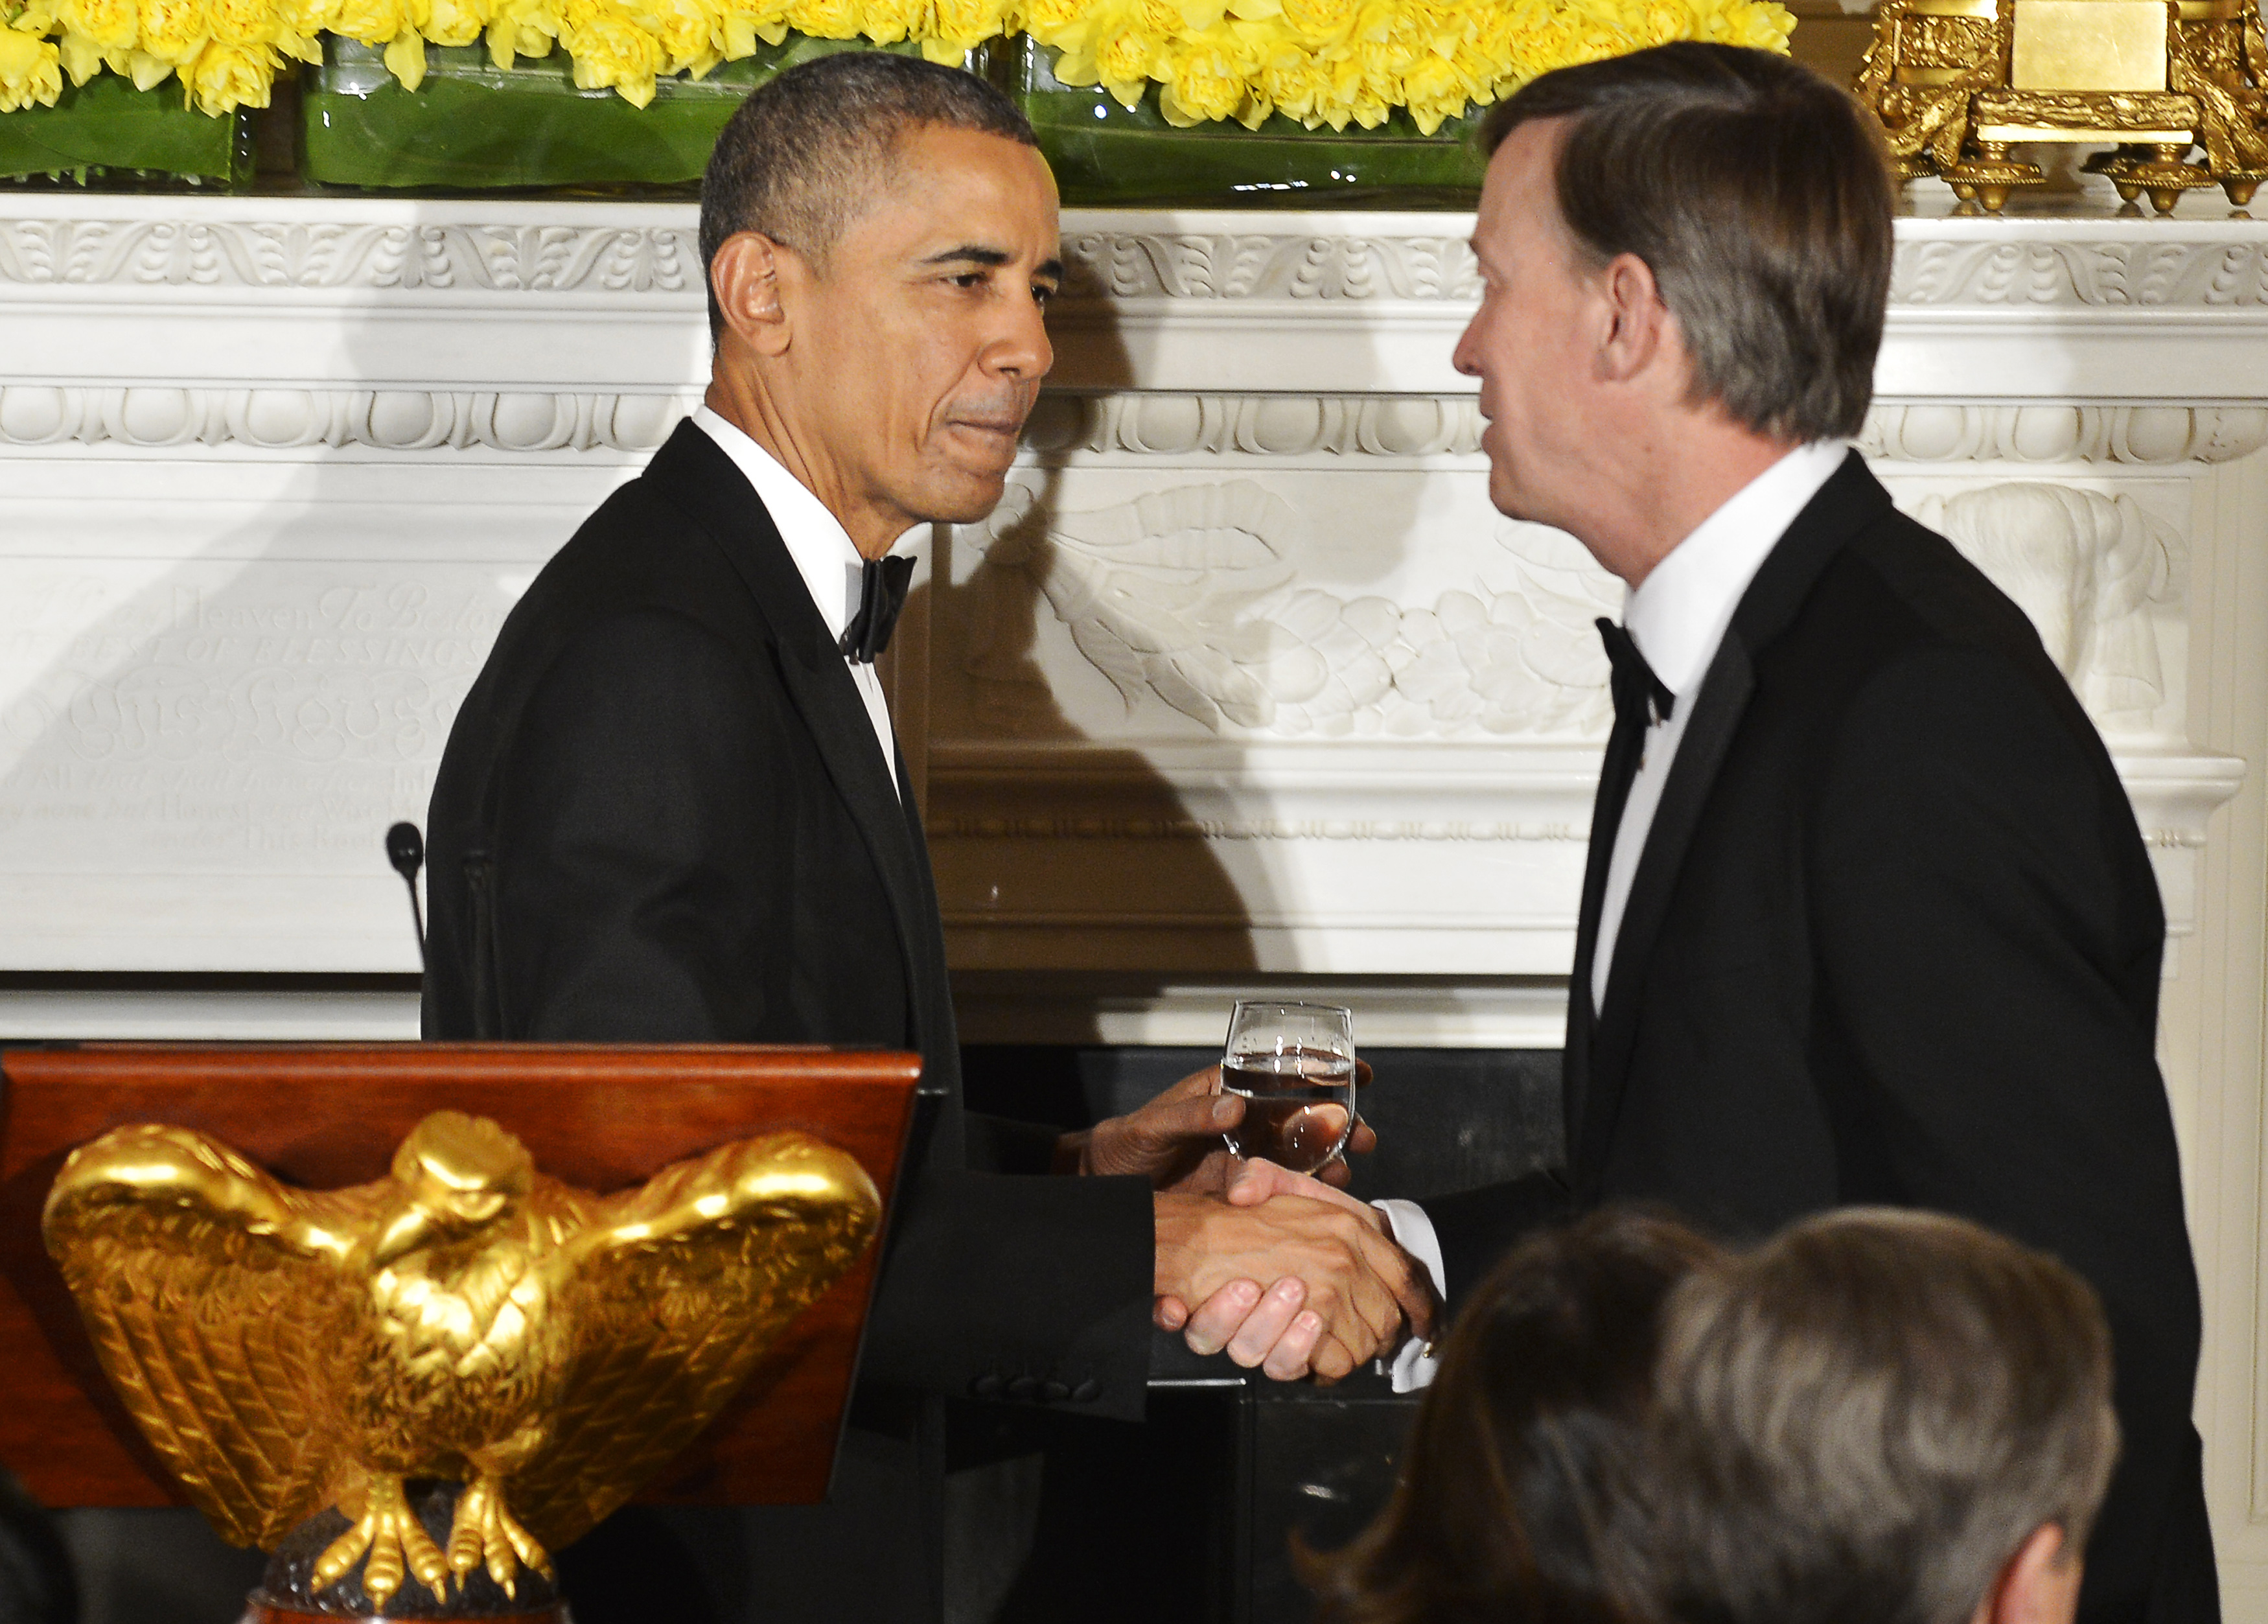 U.S. President Obama shakes hands with National Governors Association Chairman Hickenlooper after a toast at the White House